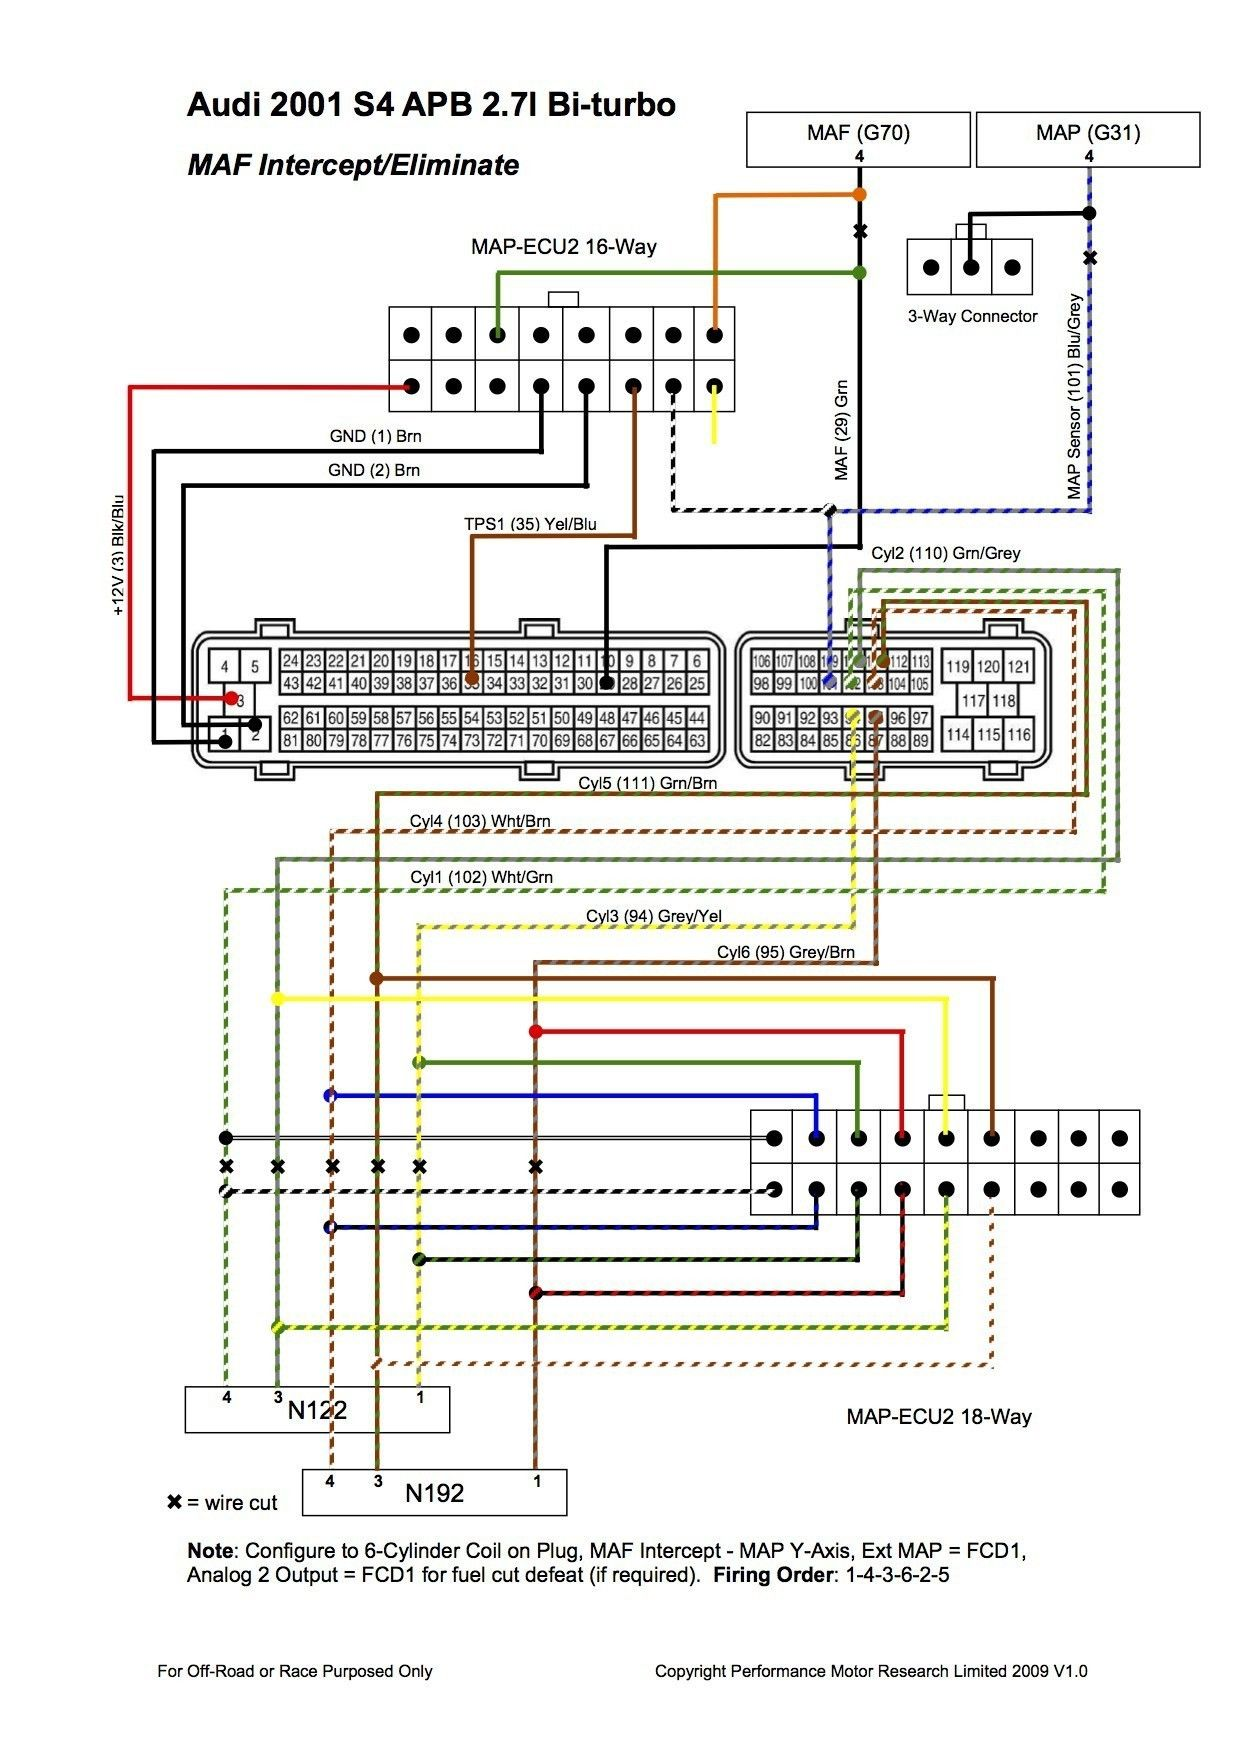 Kenwood Kdc 108 Stereo Wire Diagram In 2021 Wiring Diagram Trailer Wiring Diagram Electrical Wiring Diagram